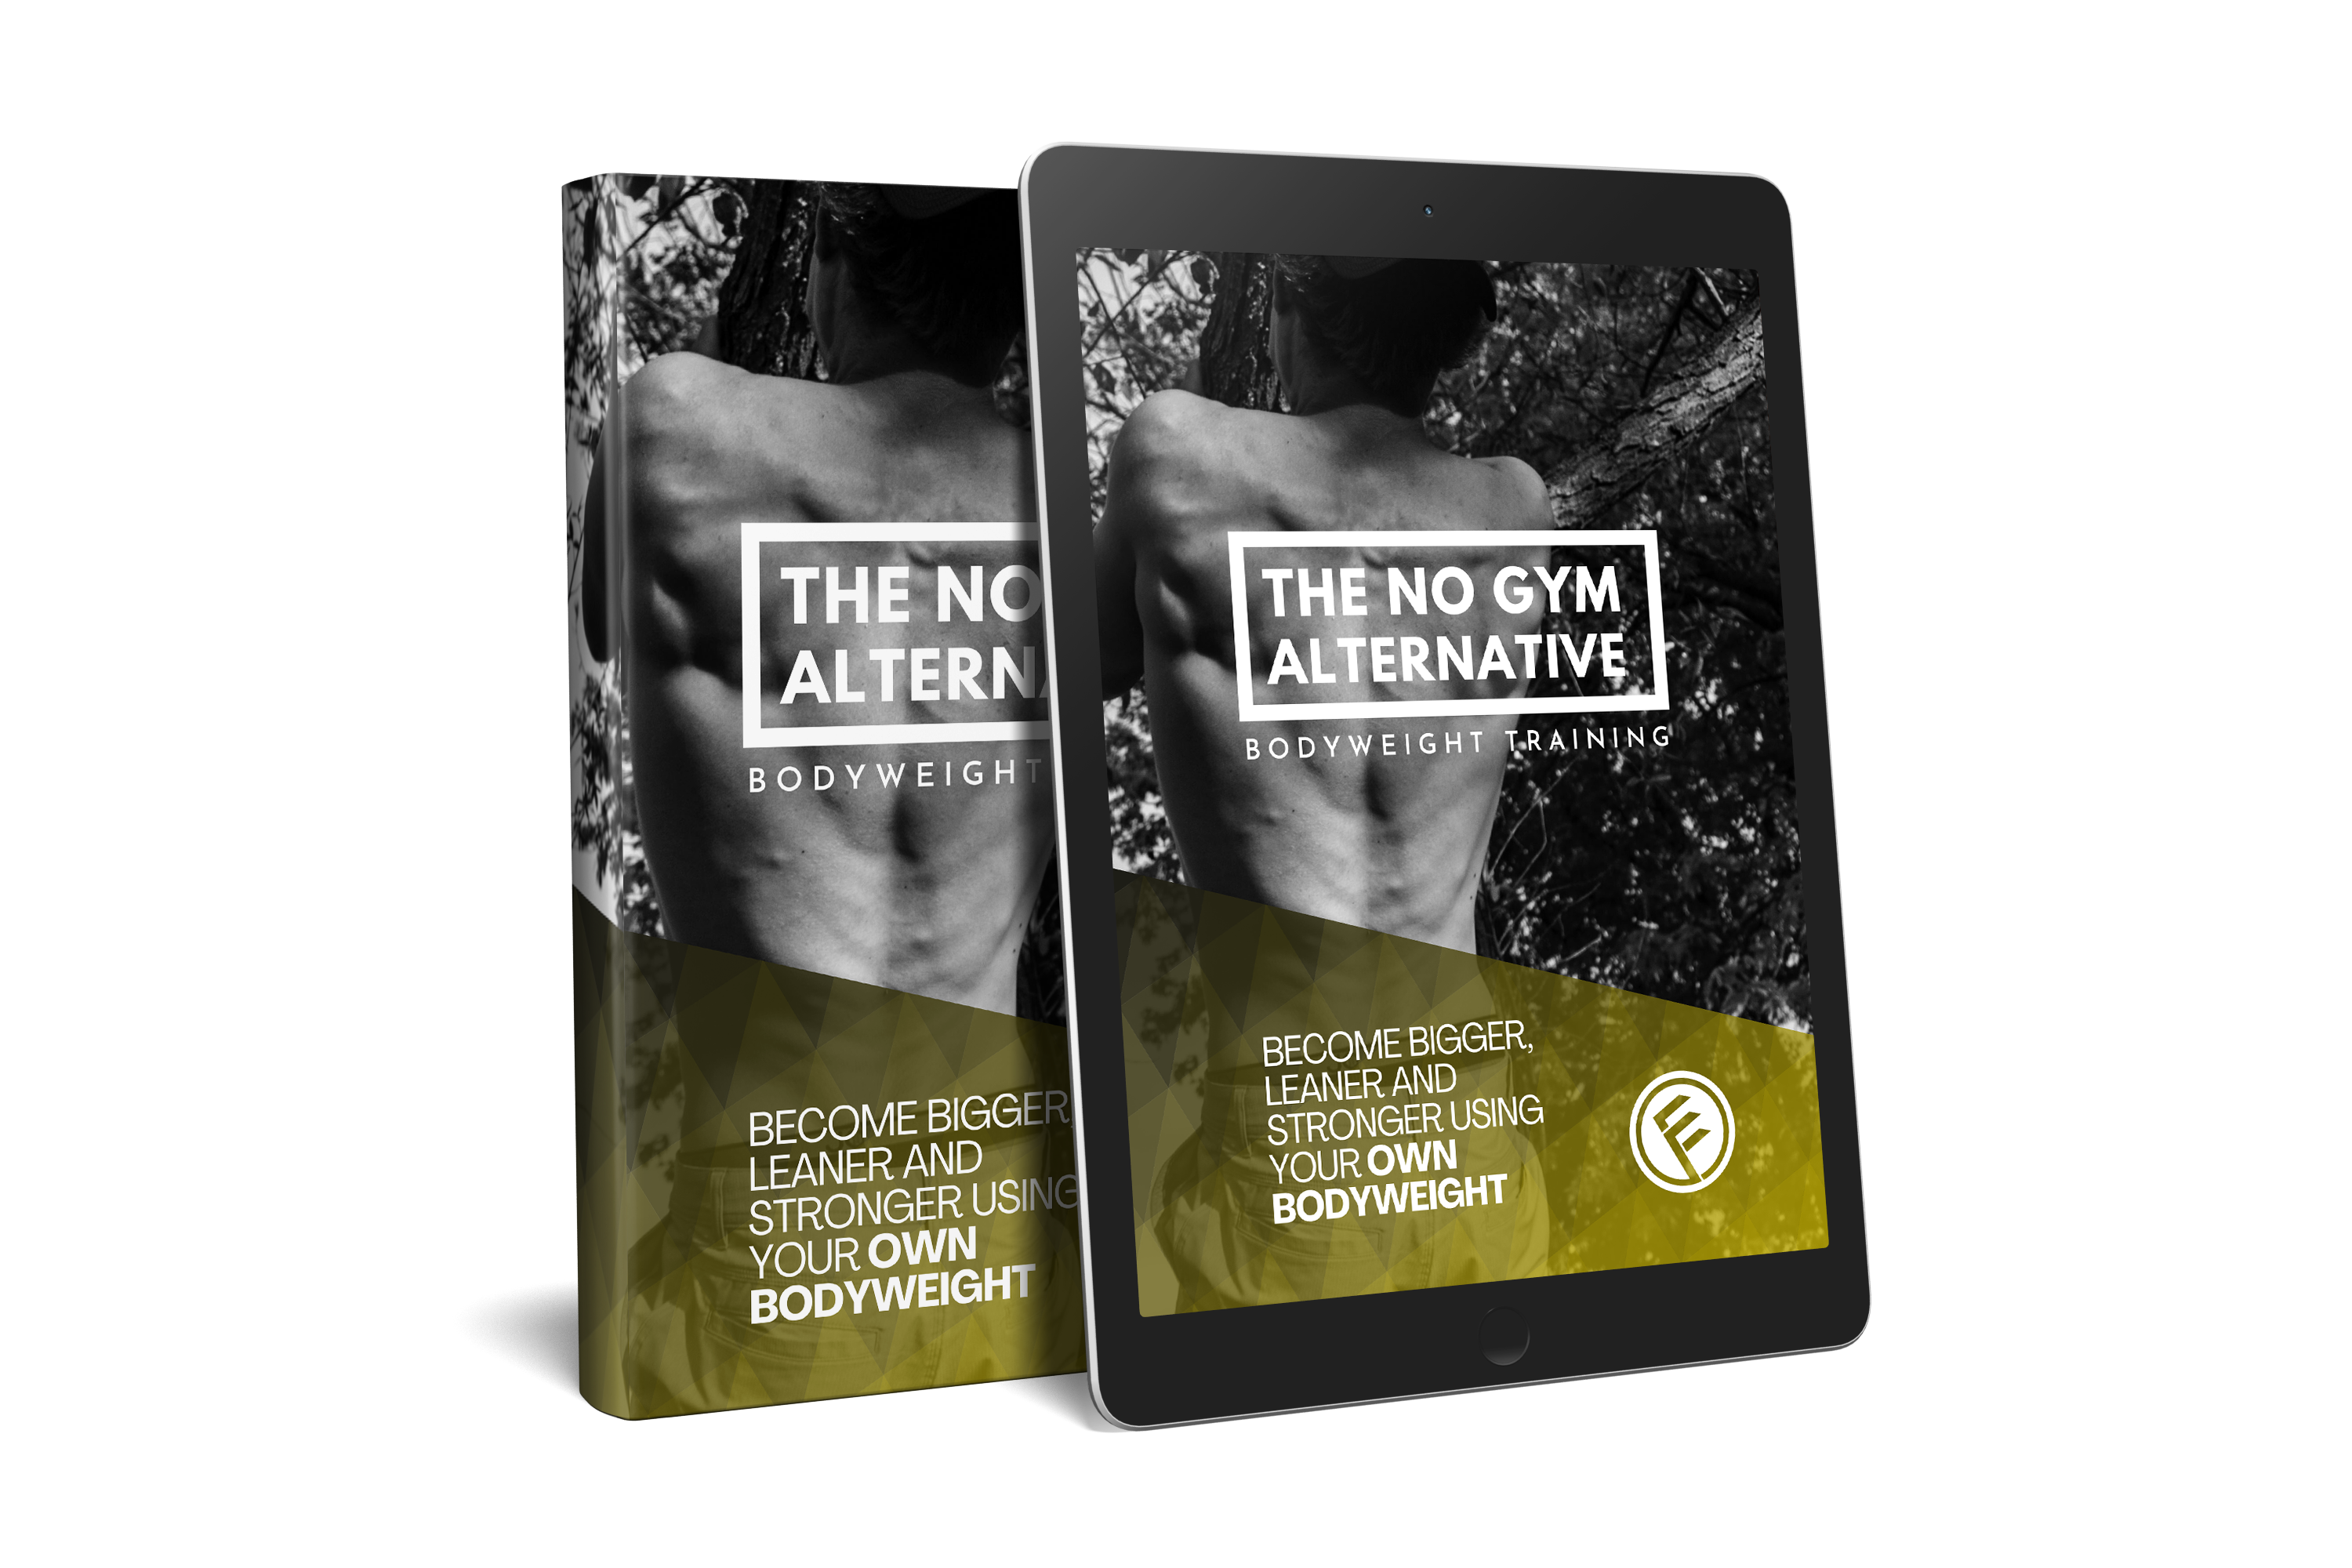 The No Gym Alternative cover by Everfit.